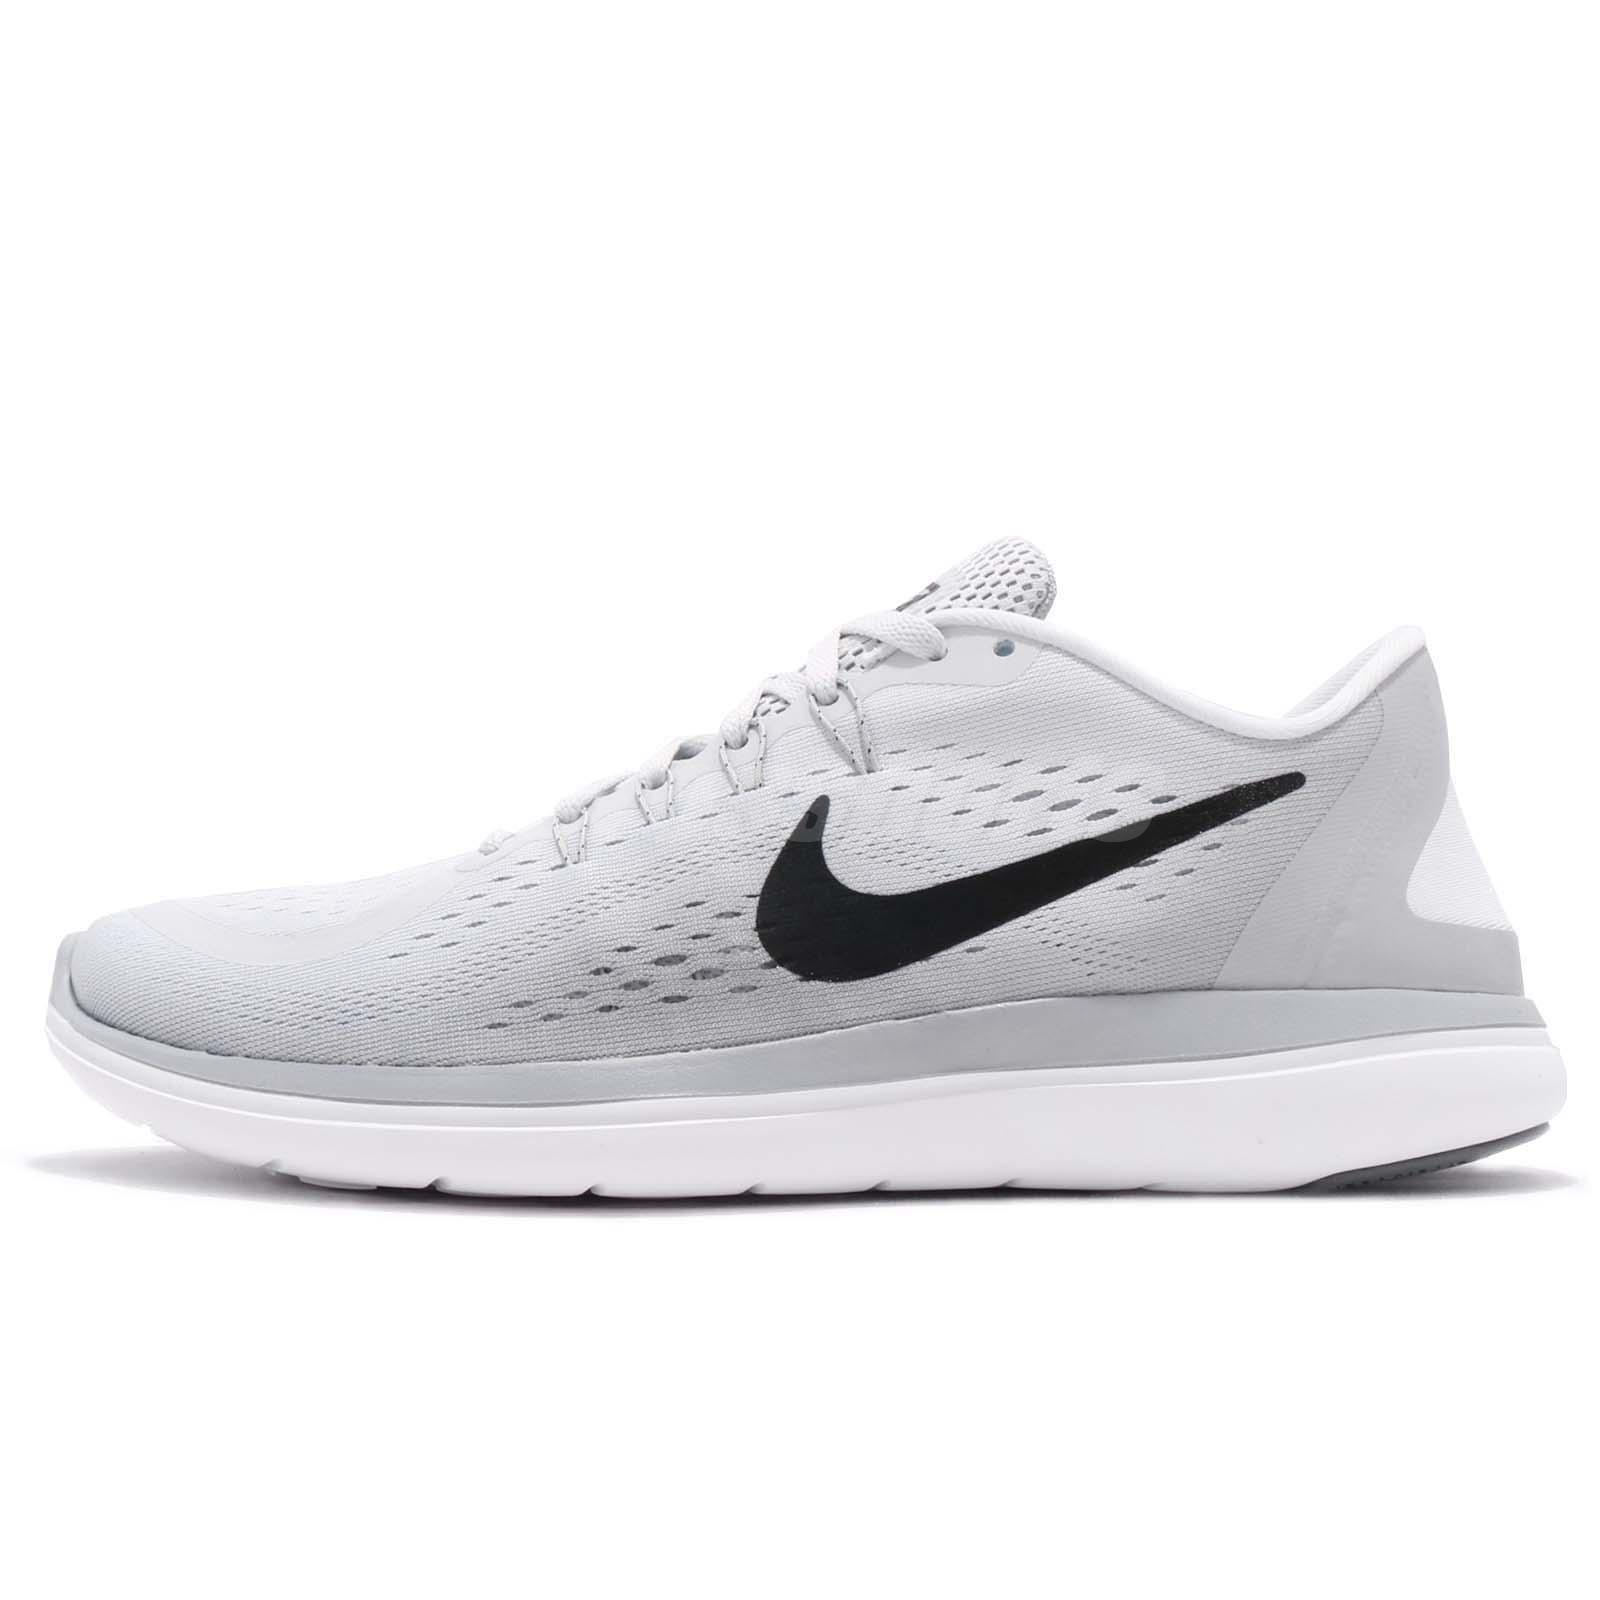 a7dd6b3350b7b Nike Flex 2017 RN Running Pure Platinum Wolf Grey Men Running Shoes  898457-002